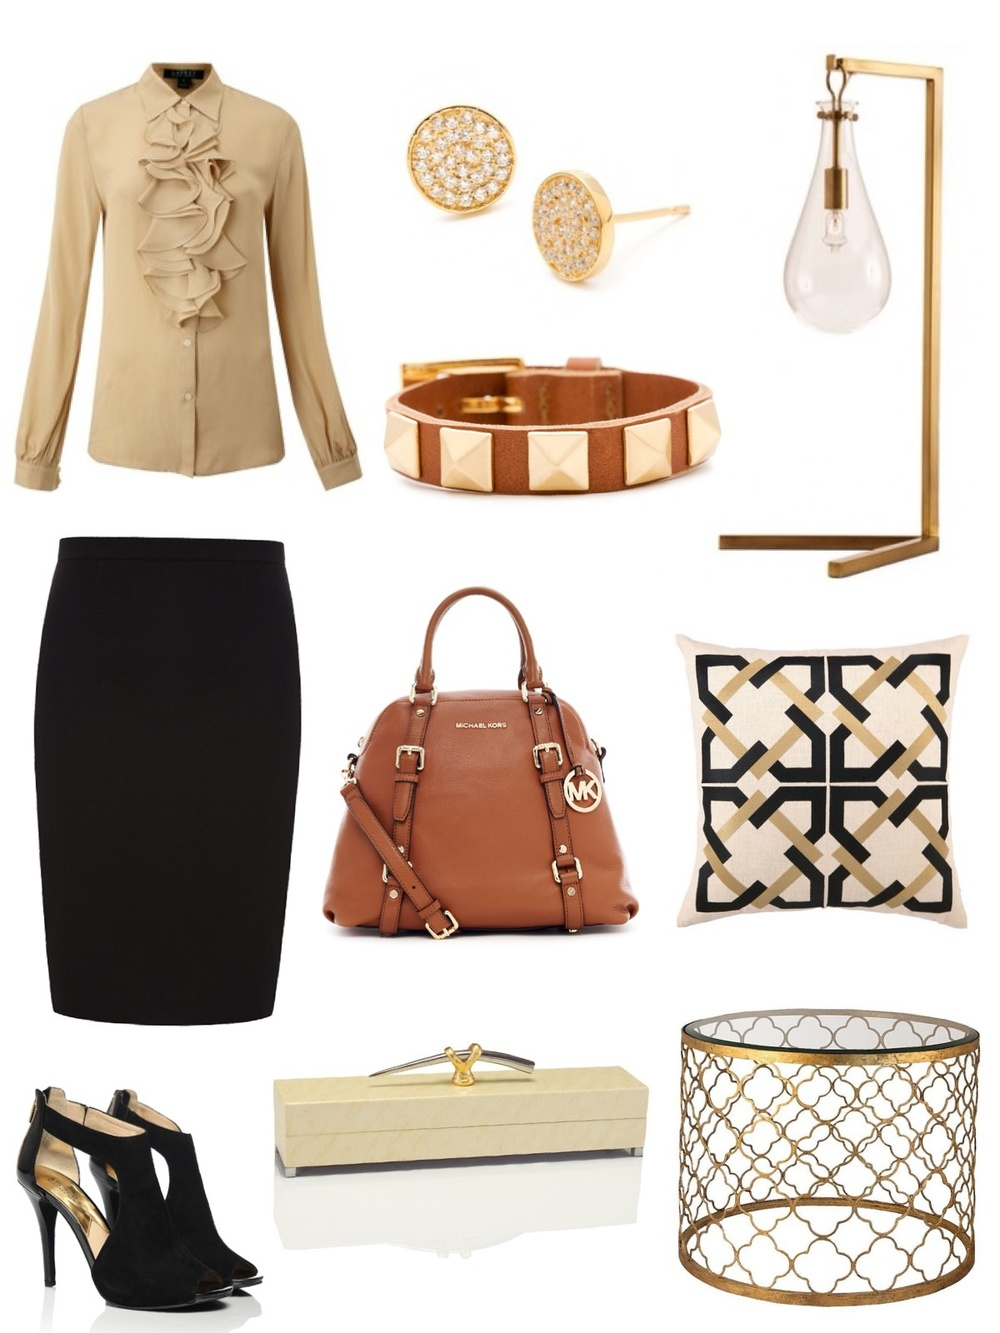 Available through Savvy: jewelry, lamp, pillow, table, decorative box / Handbag, shoes: Michael Kors / Blouse: Ralph Lauren / Pencil skirt: JCrew Kimberly Kowalski, Allied ASID